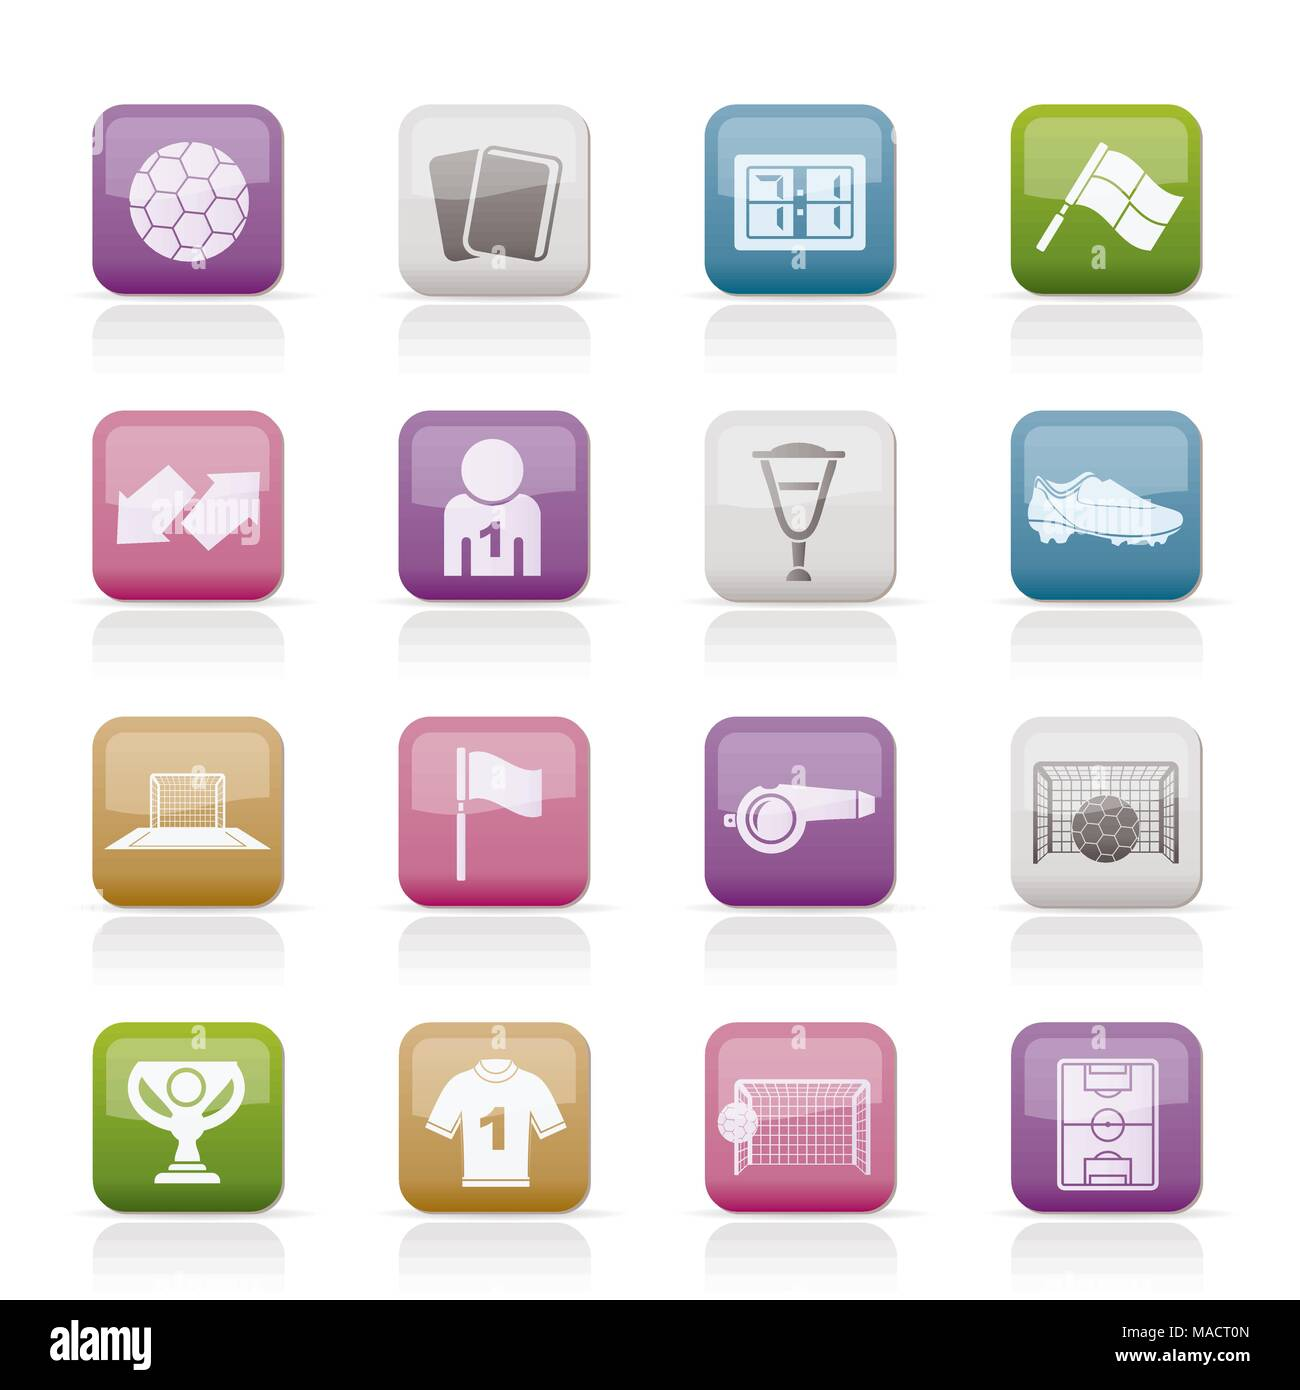 football, soccer and sport icons - vector icon set - Stock Vector